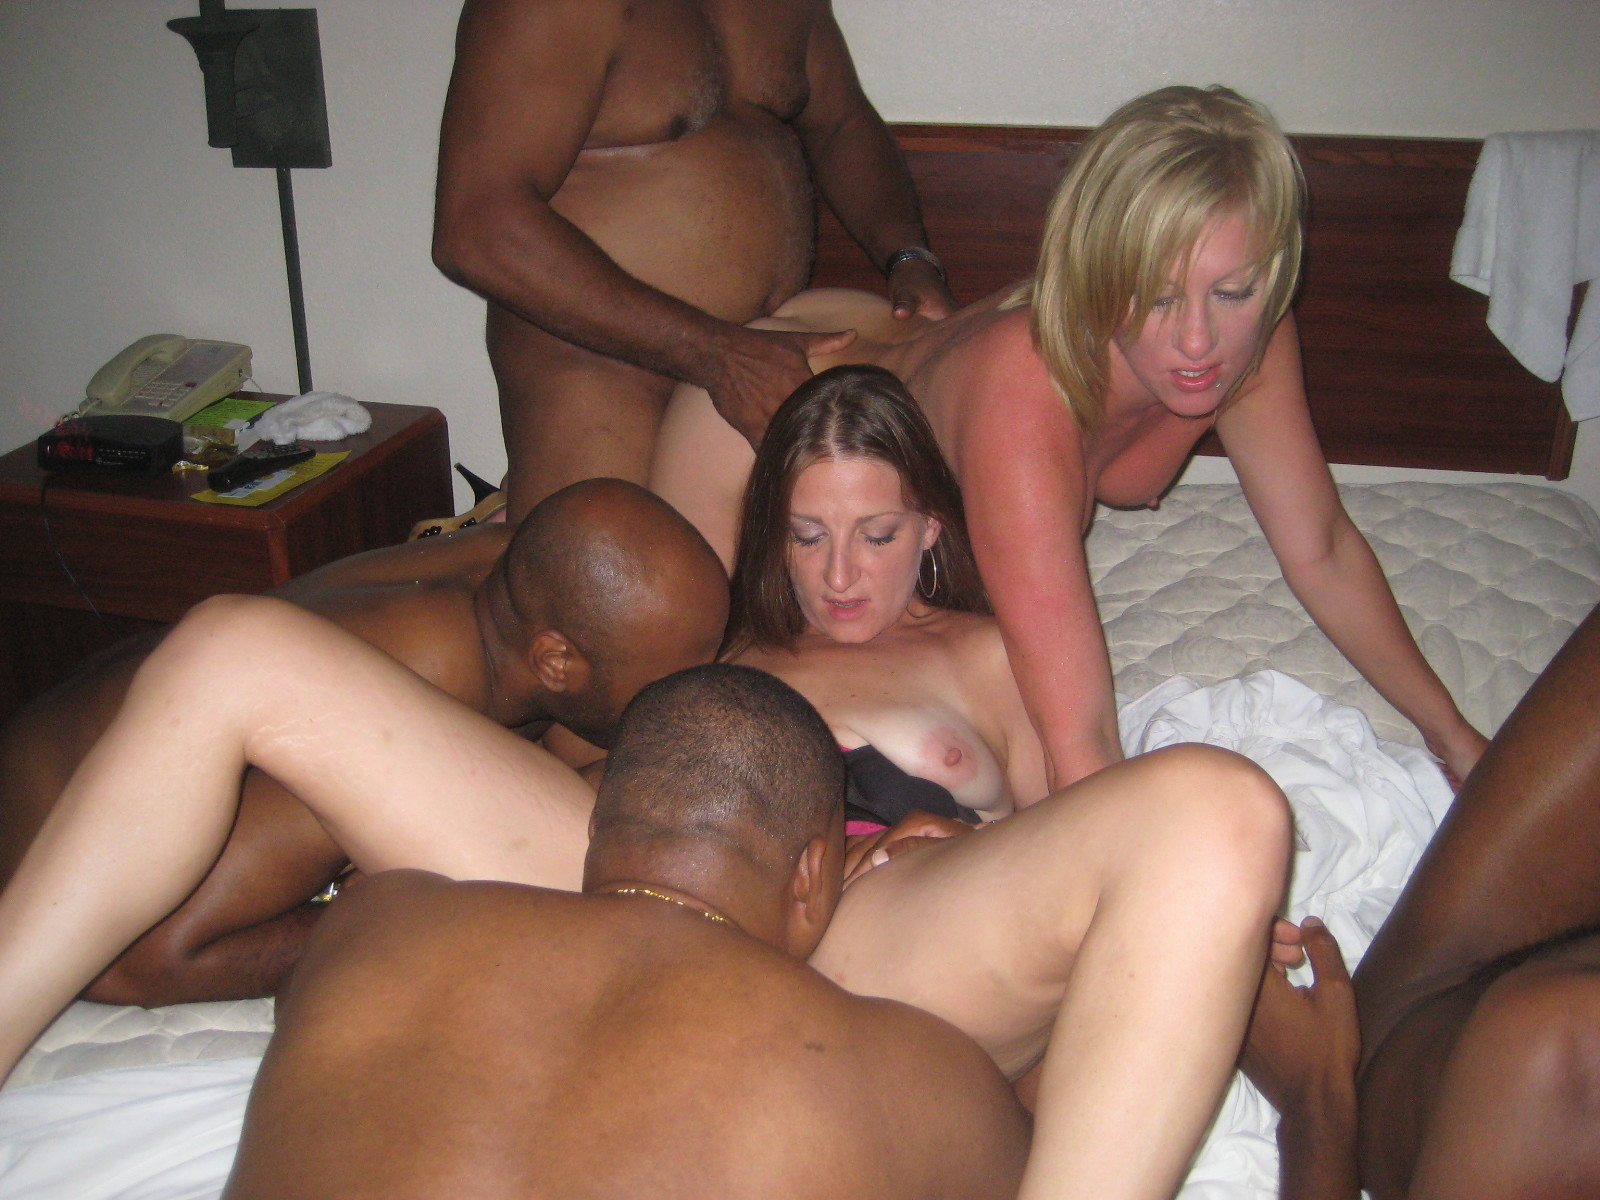 Free homemade interracial sex pics seems very